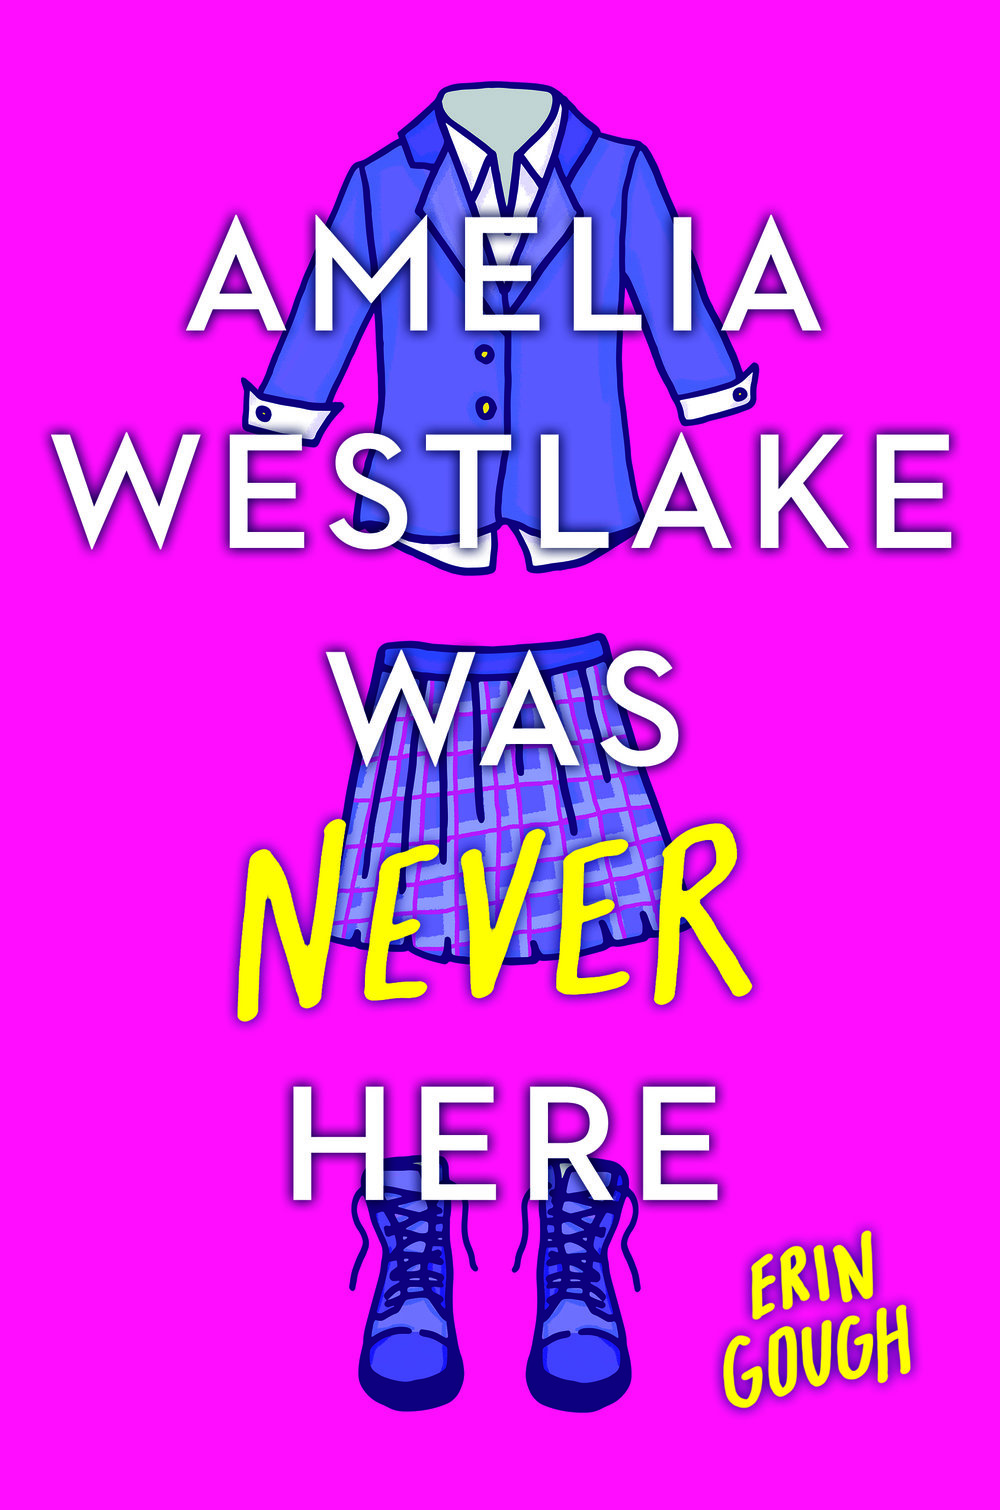 amelia westlake was never here.jpg